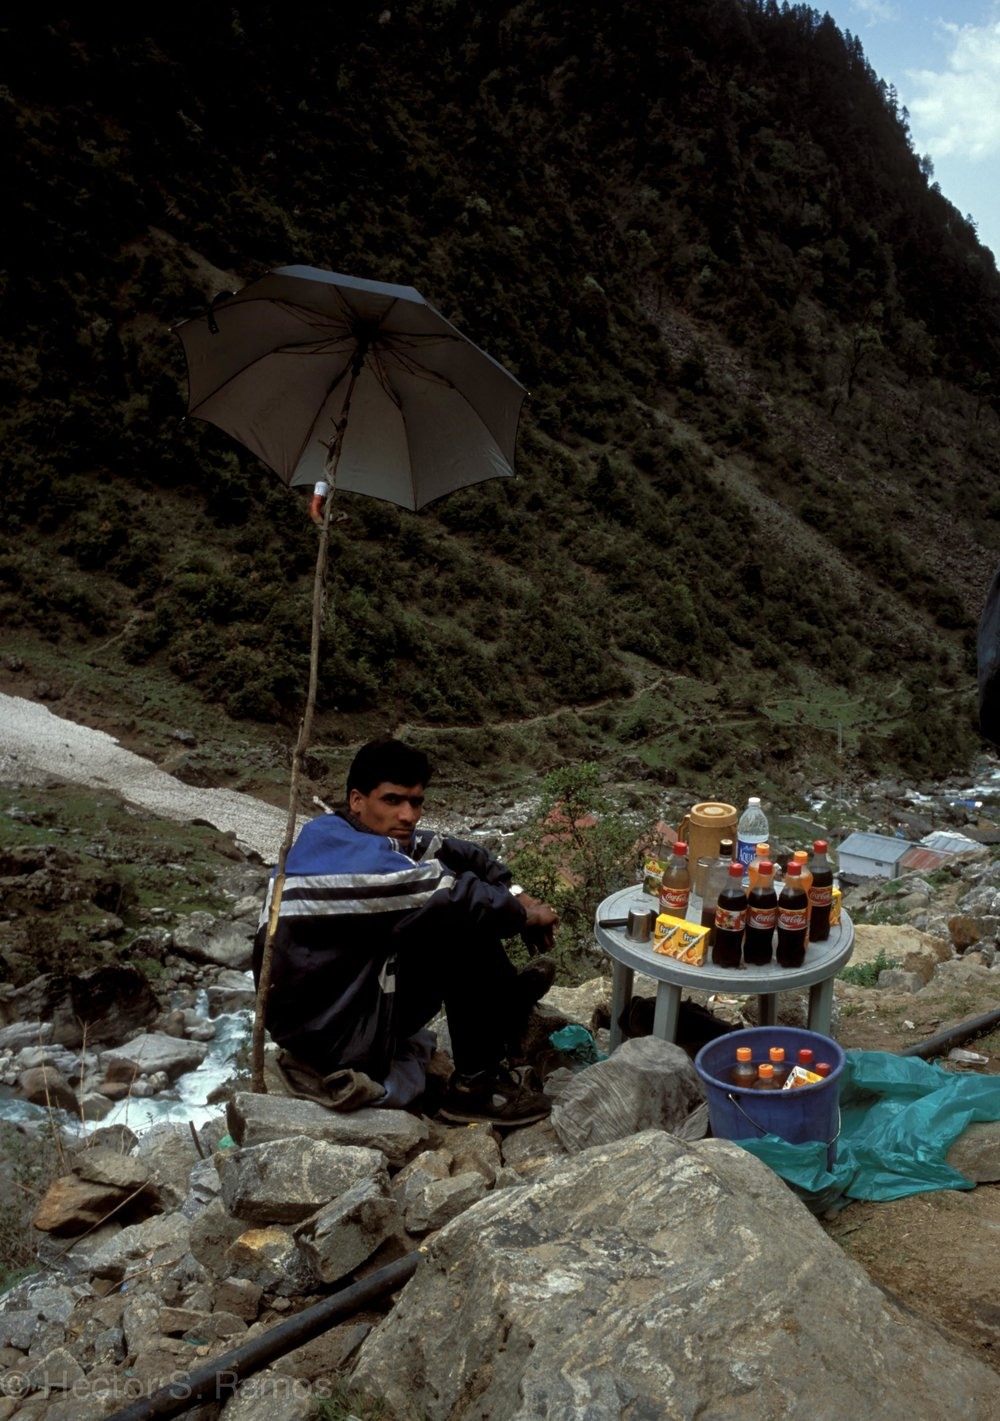 Himalayan store on the way to Kedarnath.  Photo: Leica MP, Elmarit 24mm f2.8 lens, Velvia 50.